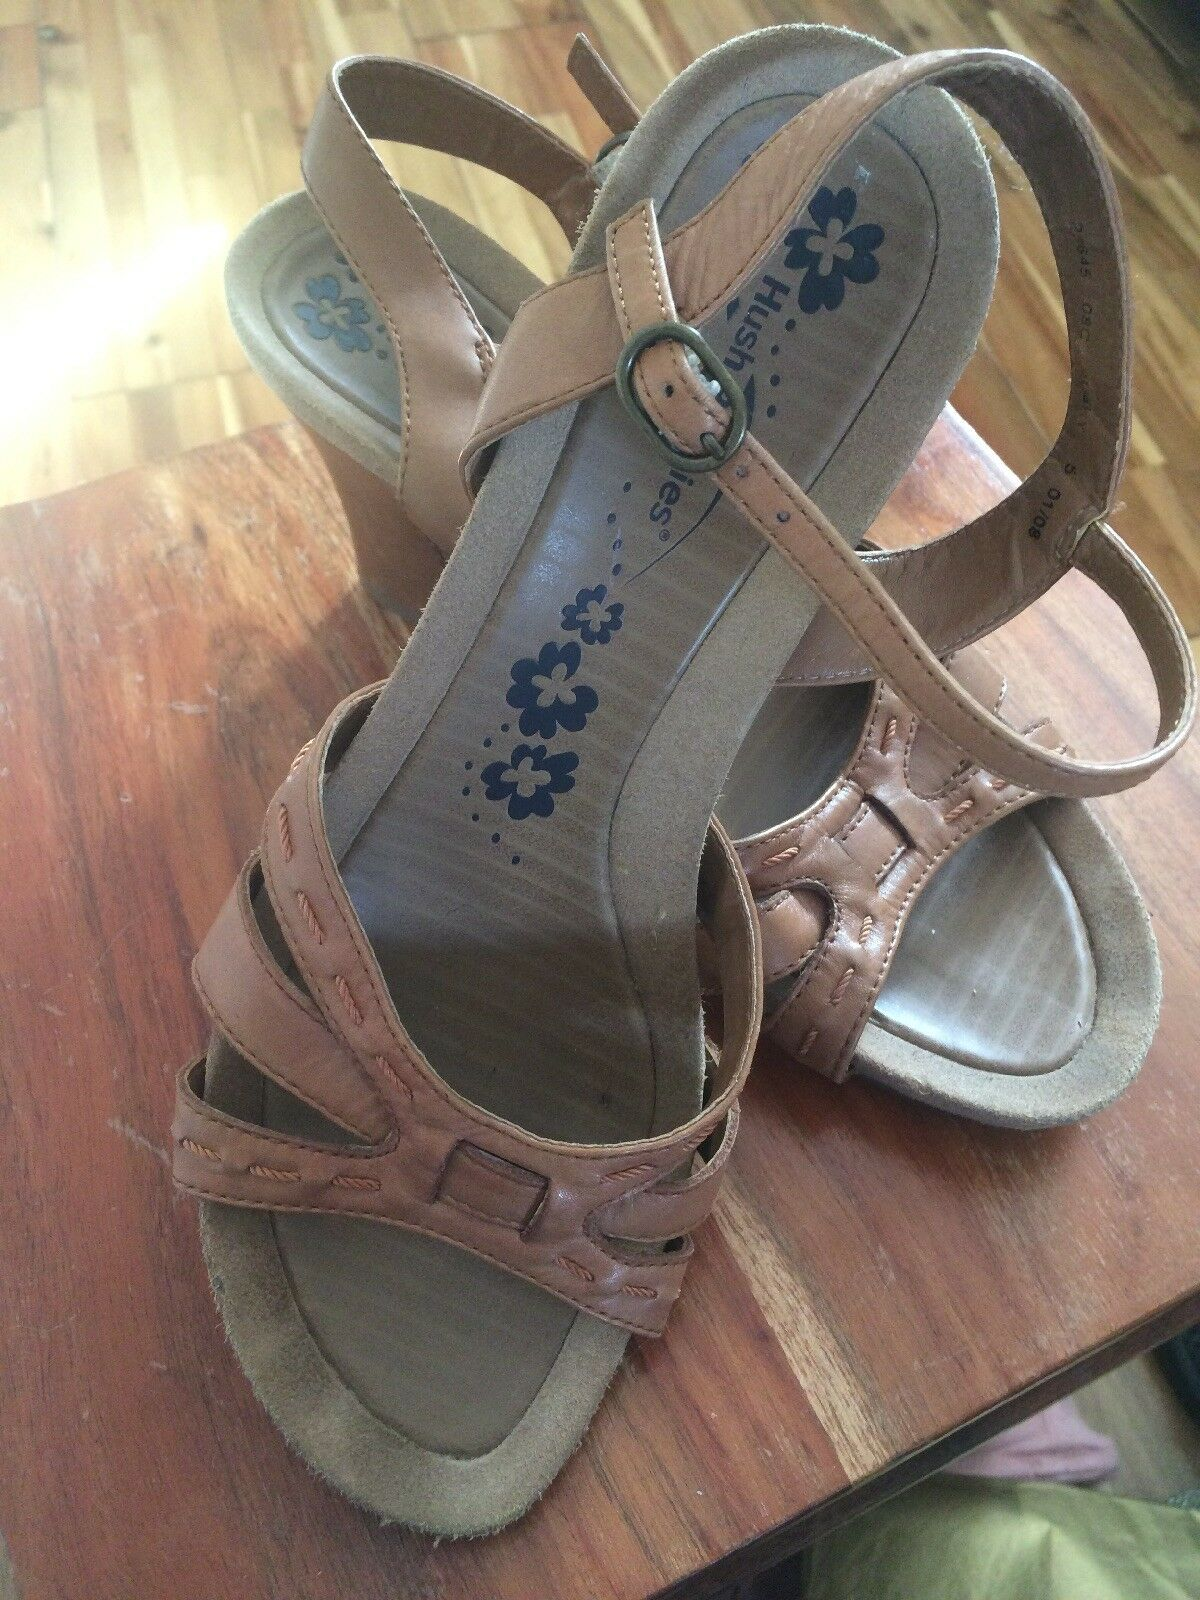 Hush Puppy Dusky Tan Leather Worn Wedge Sandal Size 5 Worn Leather Once 04f6b4